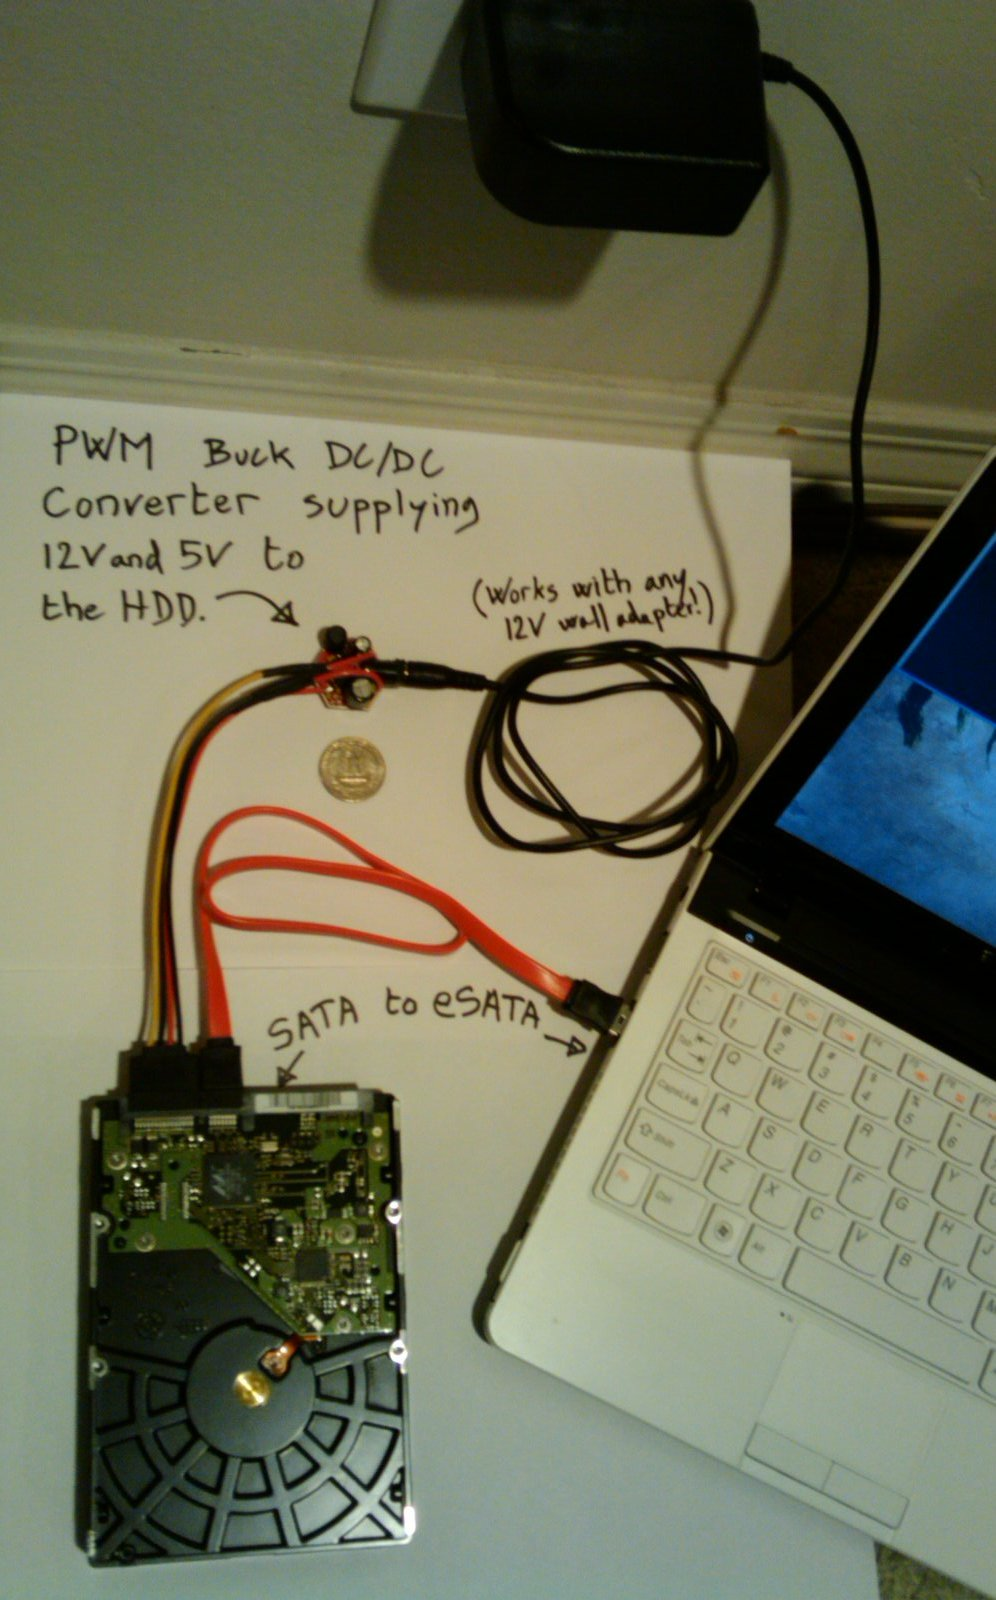 Diy Coin Sized Sata Power Module To Replace A Harddrive Docking Station Supply Circuit Diagram For Usb Devices